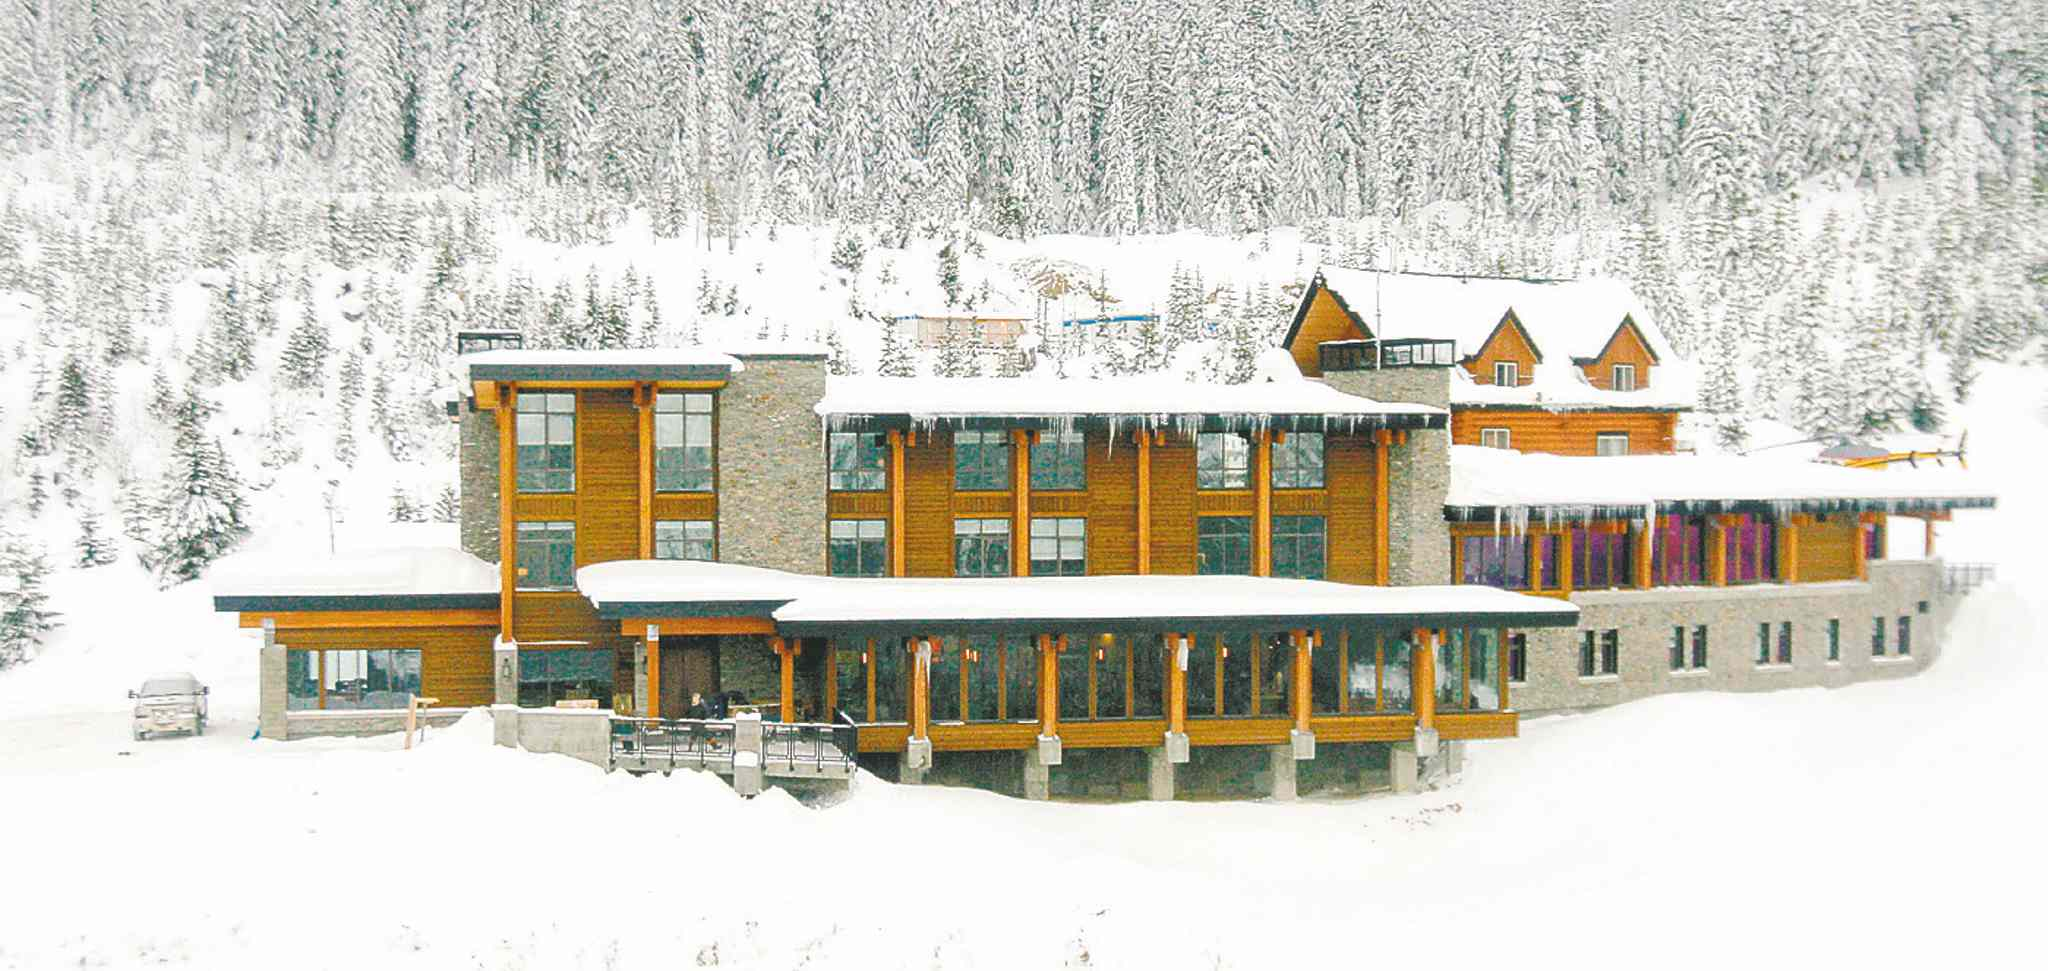 The new 17-million dollar lodge at Mica Heli-Skiing.